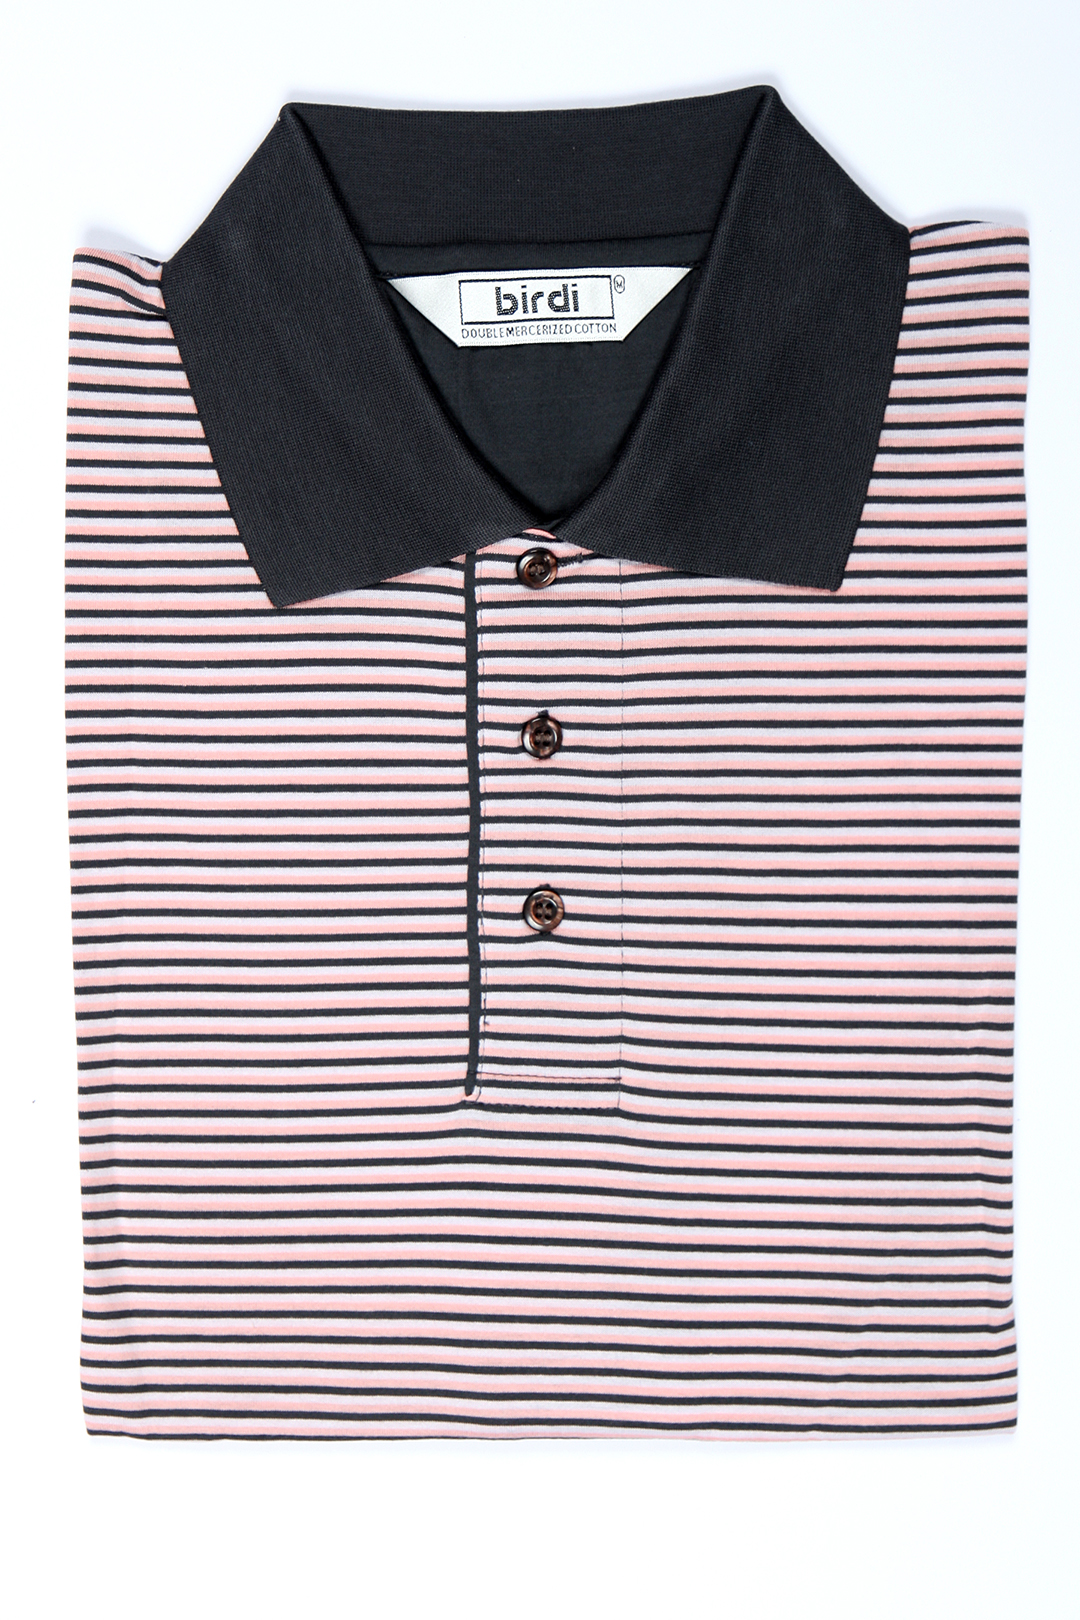 pink--black--white-stripe-men's-double-mercerized-golf-shirt